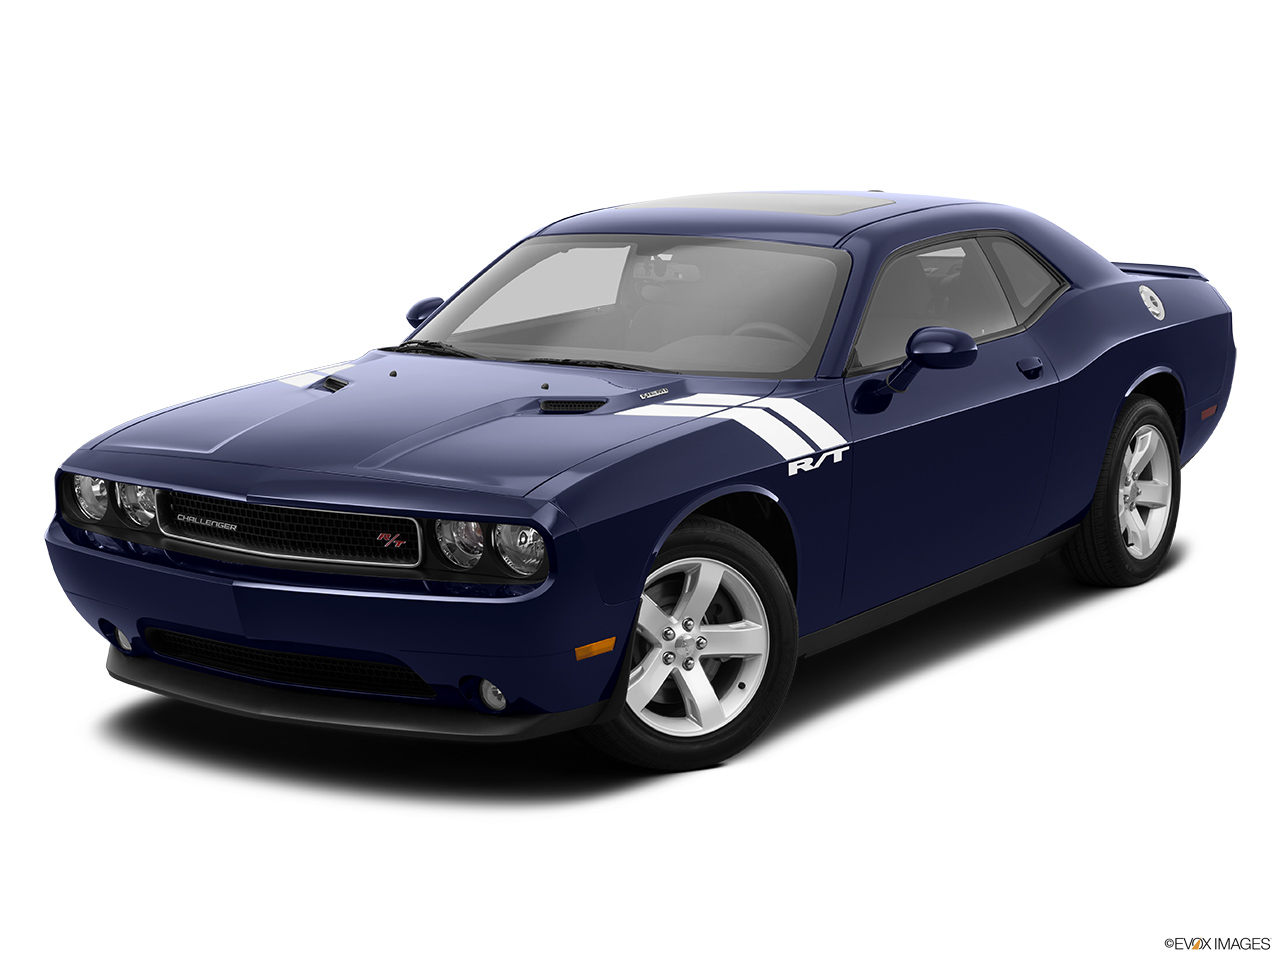 2014 Dodge Challenger Coupe R/T - Front angle view